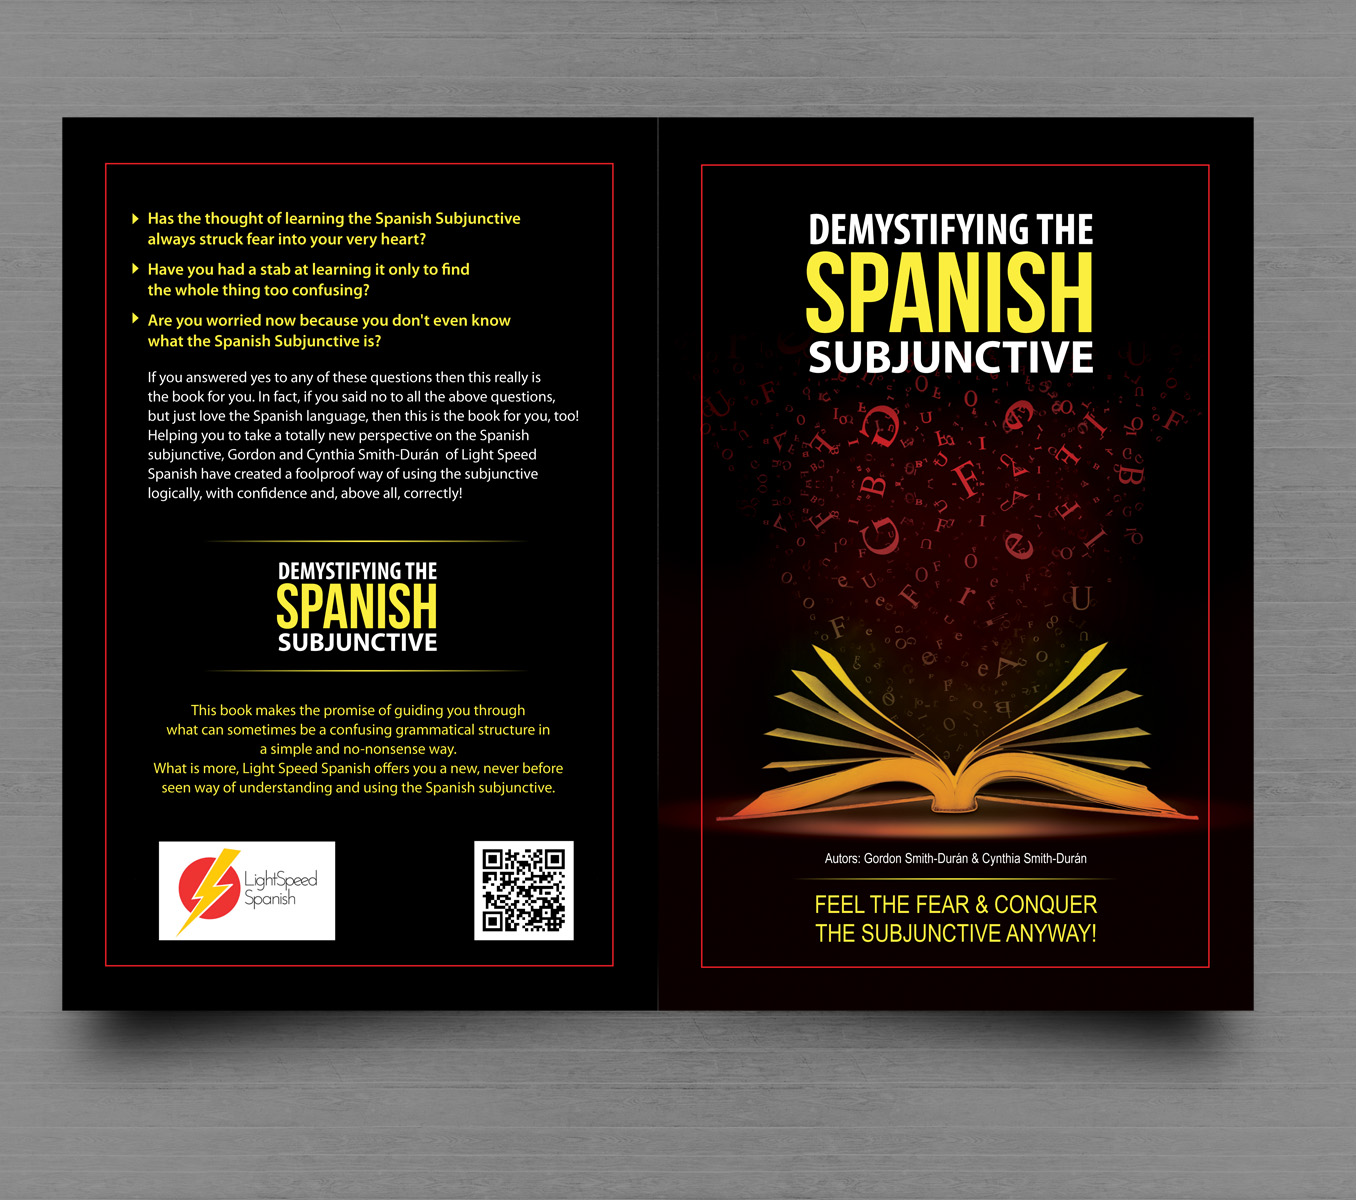 Book Cover Design By Uk For LightSpeed Spanish | Design #5871618